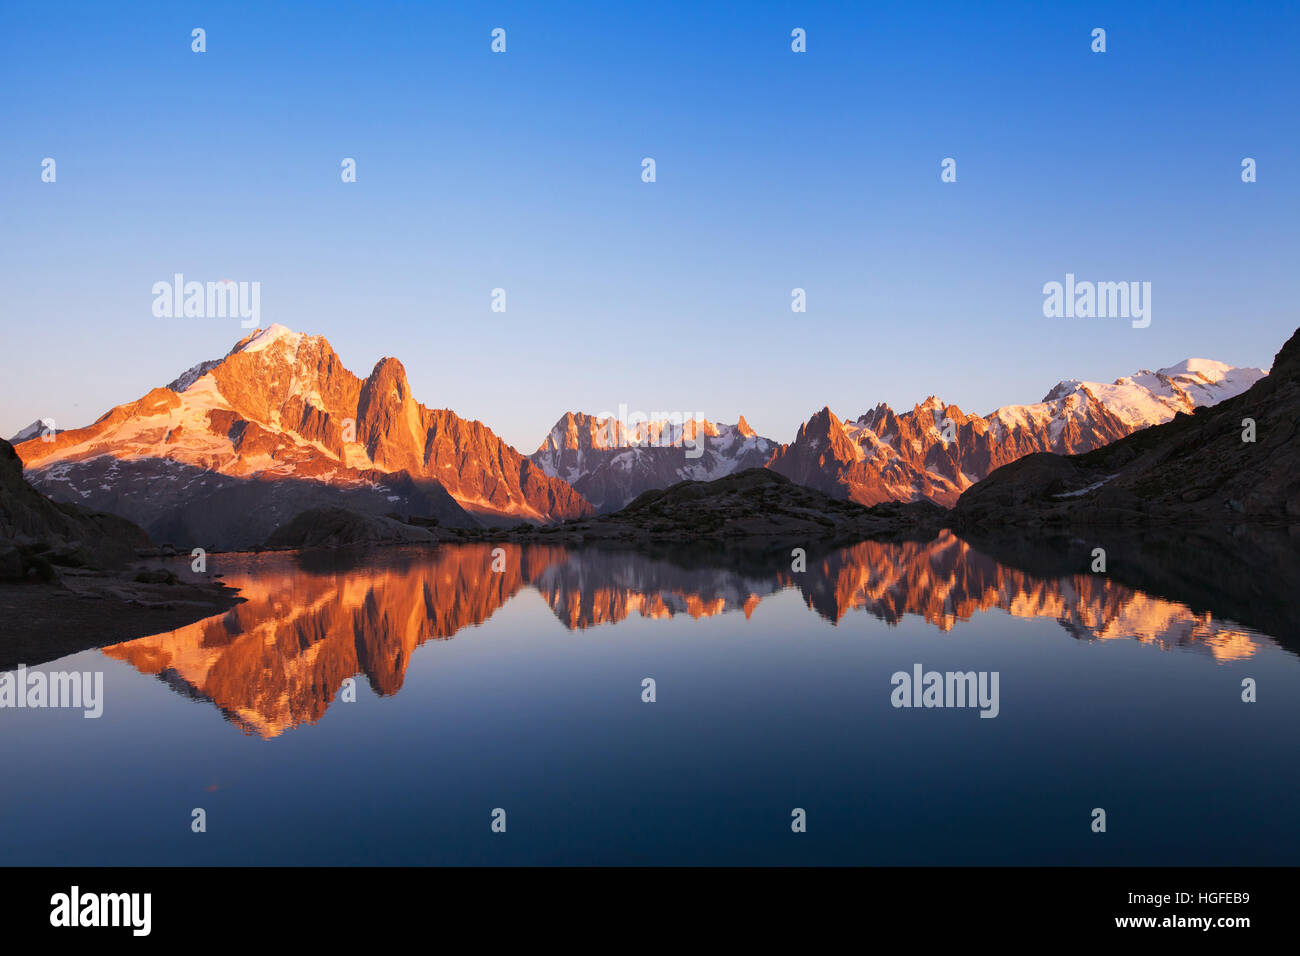 Beautiful Nature Background Mountain Landscape At Sunset Panoramic View Of Alps With Reflection In Lake